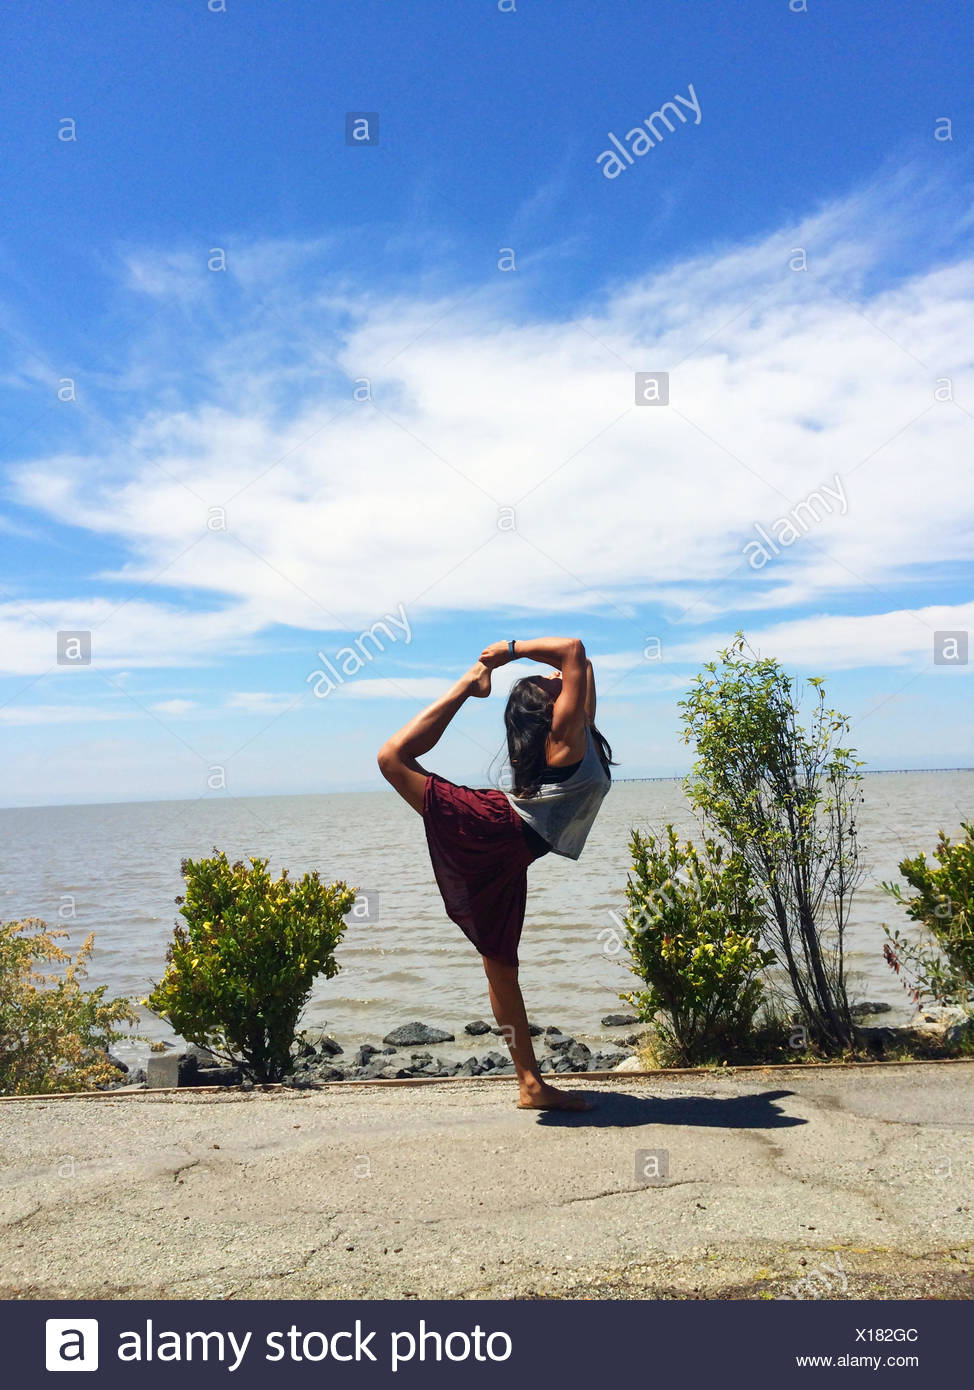 Girl doing standing bow pulling yoga pose on beach Stock Photo